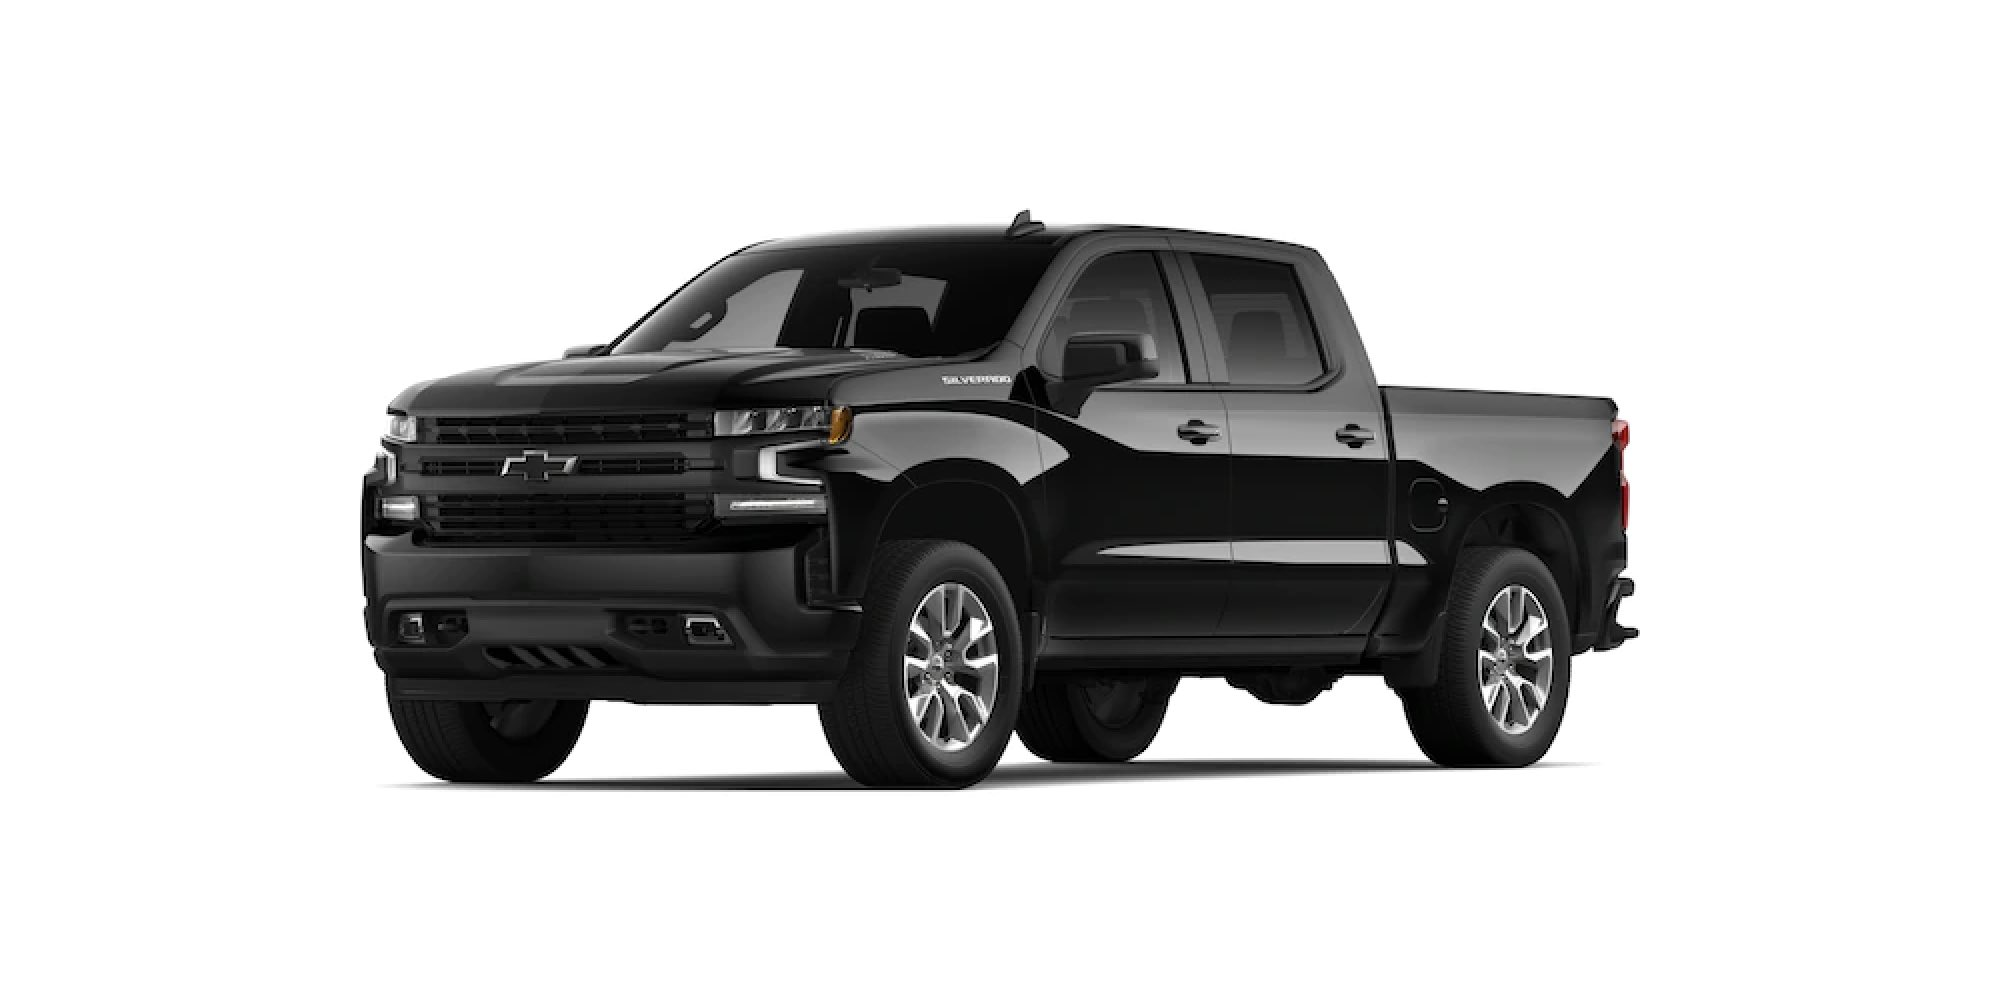 2021 Chevy SIlverado 1500 in Black